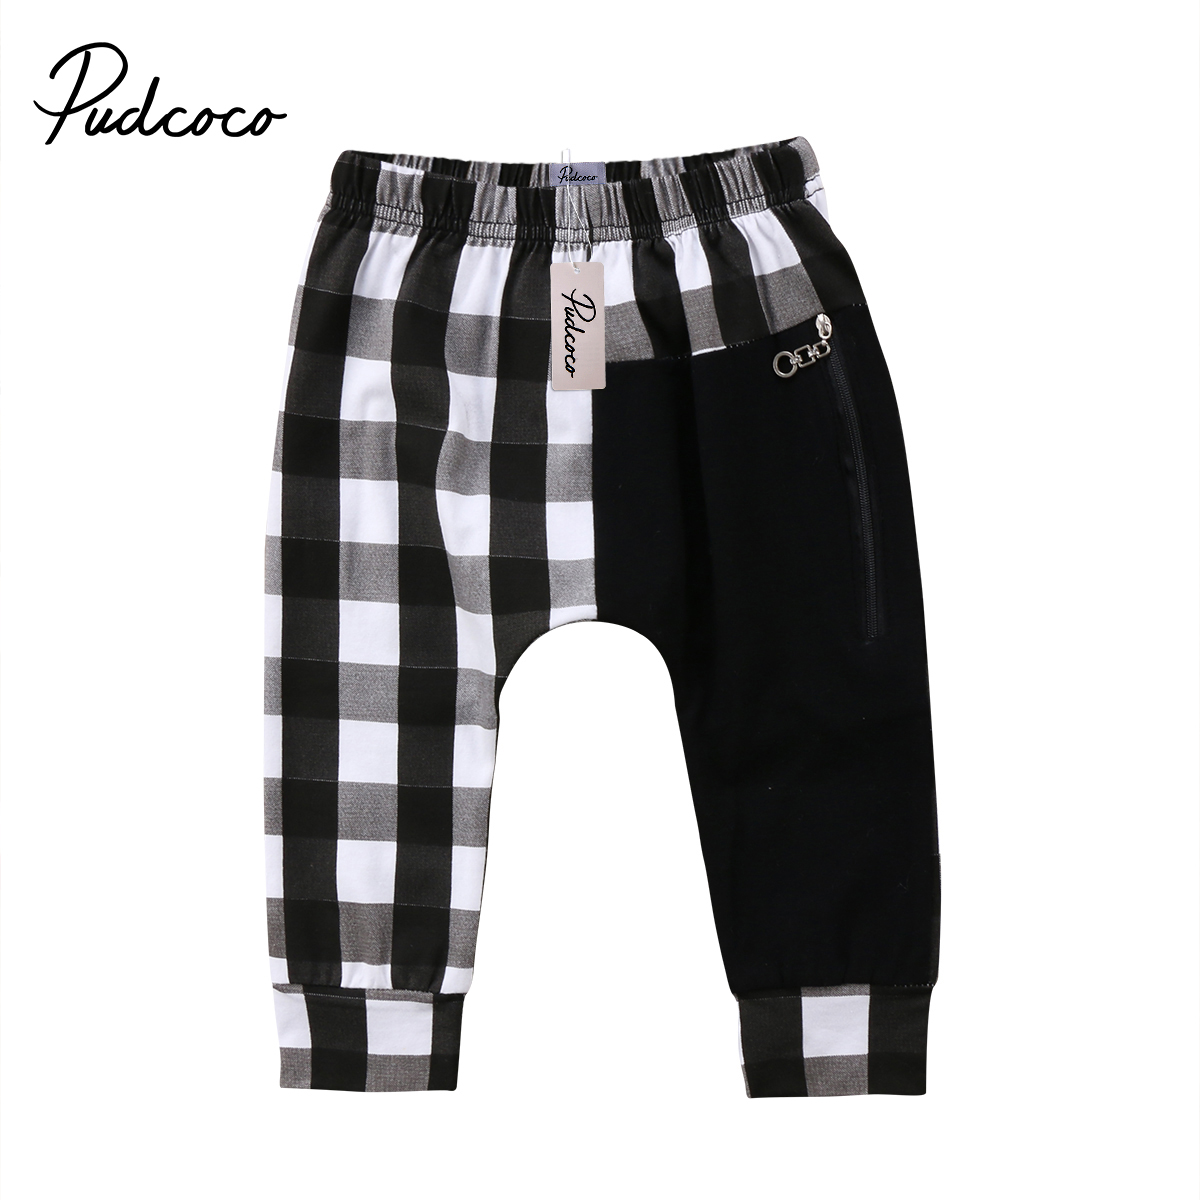 Pudcoco Toddler Kids Boys Plaid Zipper Bottom Pants Boys Casual Panty Harem Pants Trousers mid rise zipper fly pocket casual pants